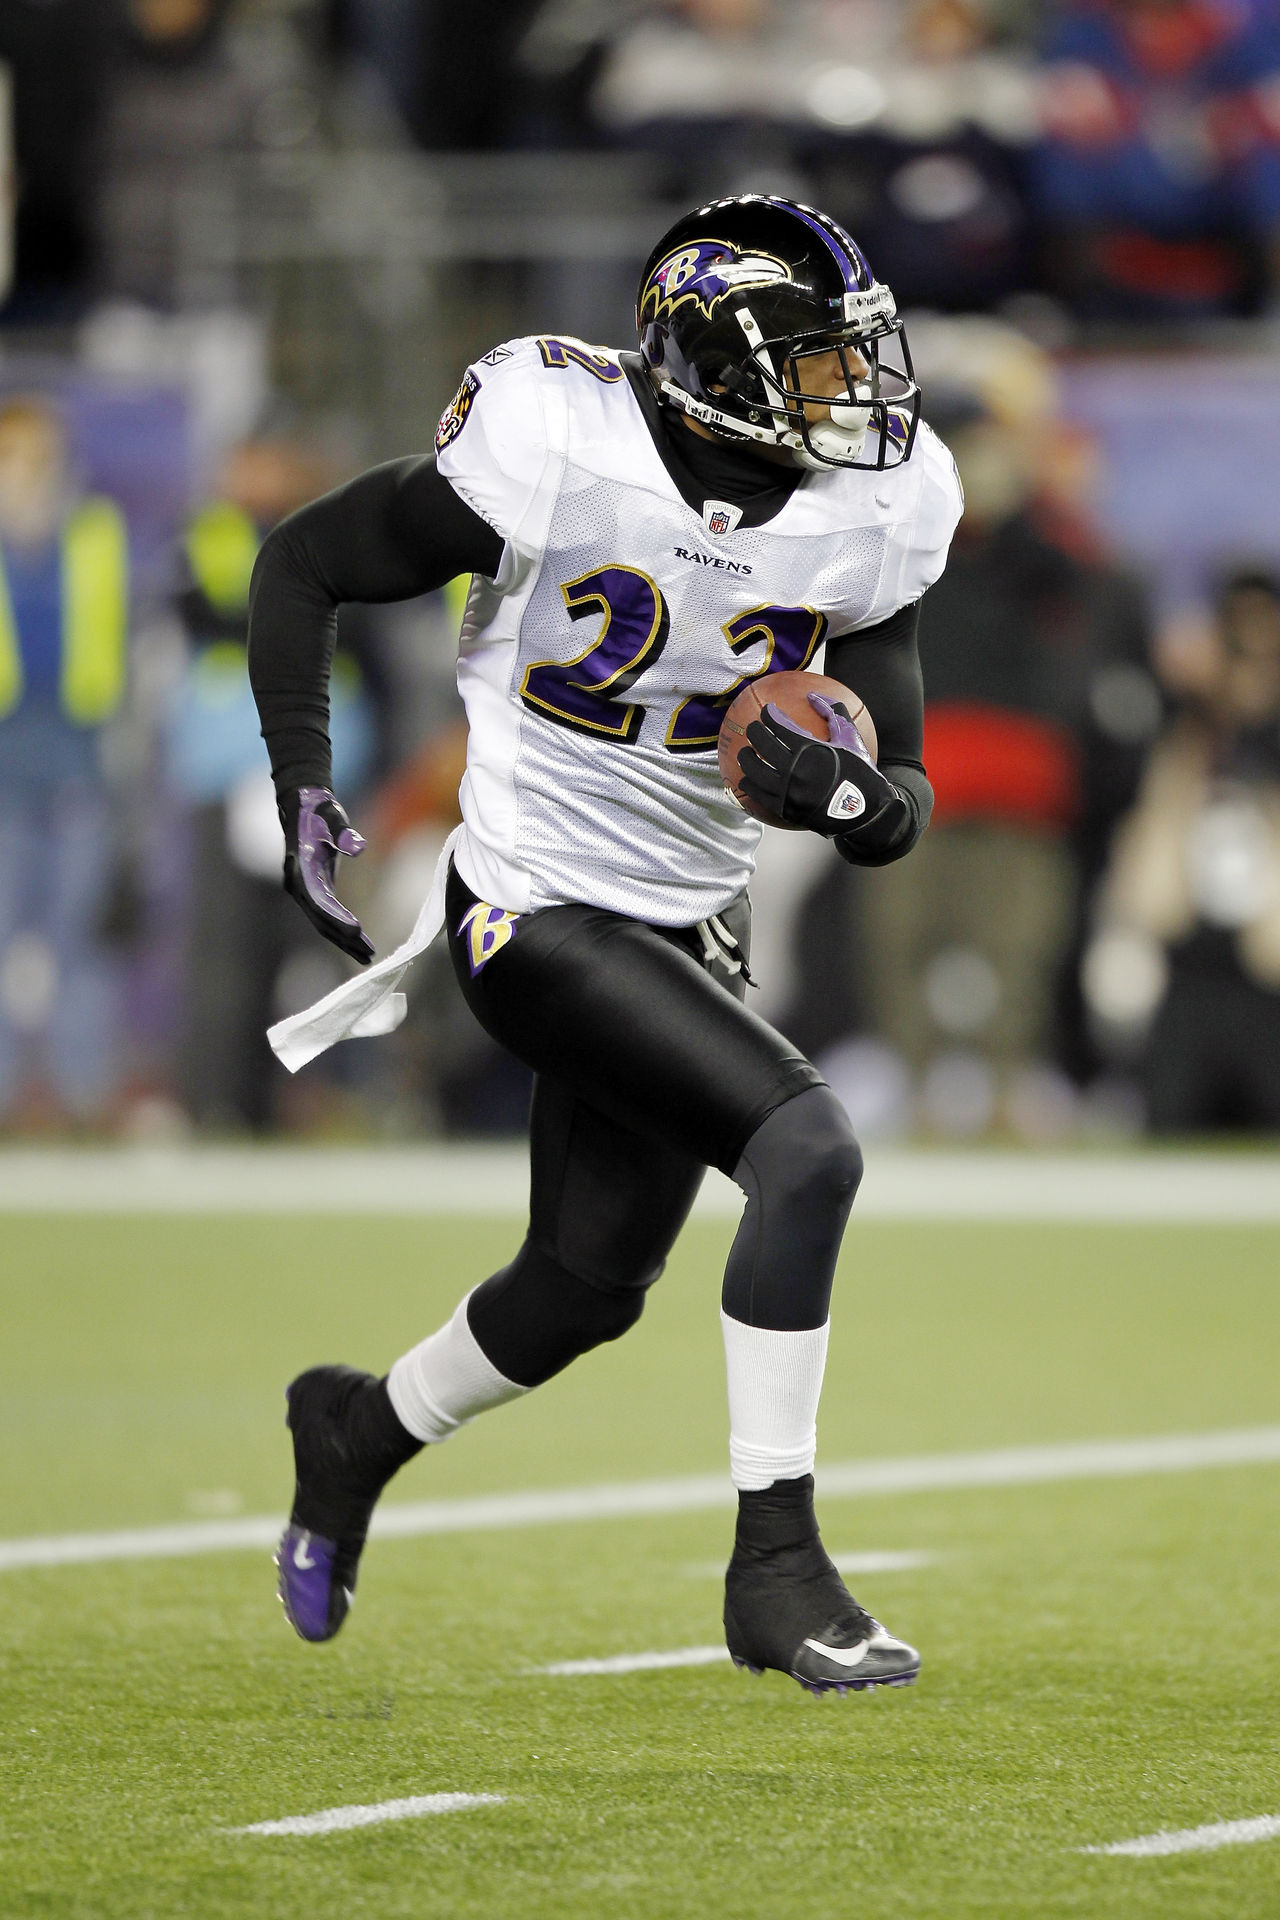 http://static.nfl.com/static/content/public/pg-photo/2013/06/17/0ap2000000212704/jimmy-smith-db-baltimore-ravens_pg_600.jpg